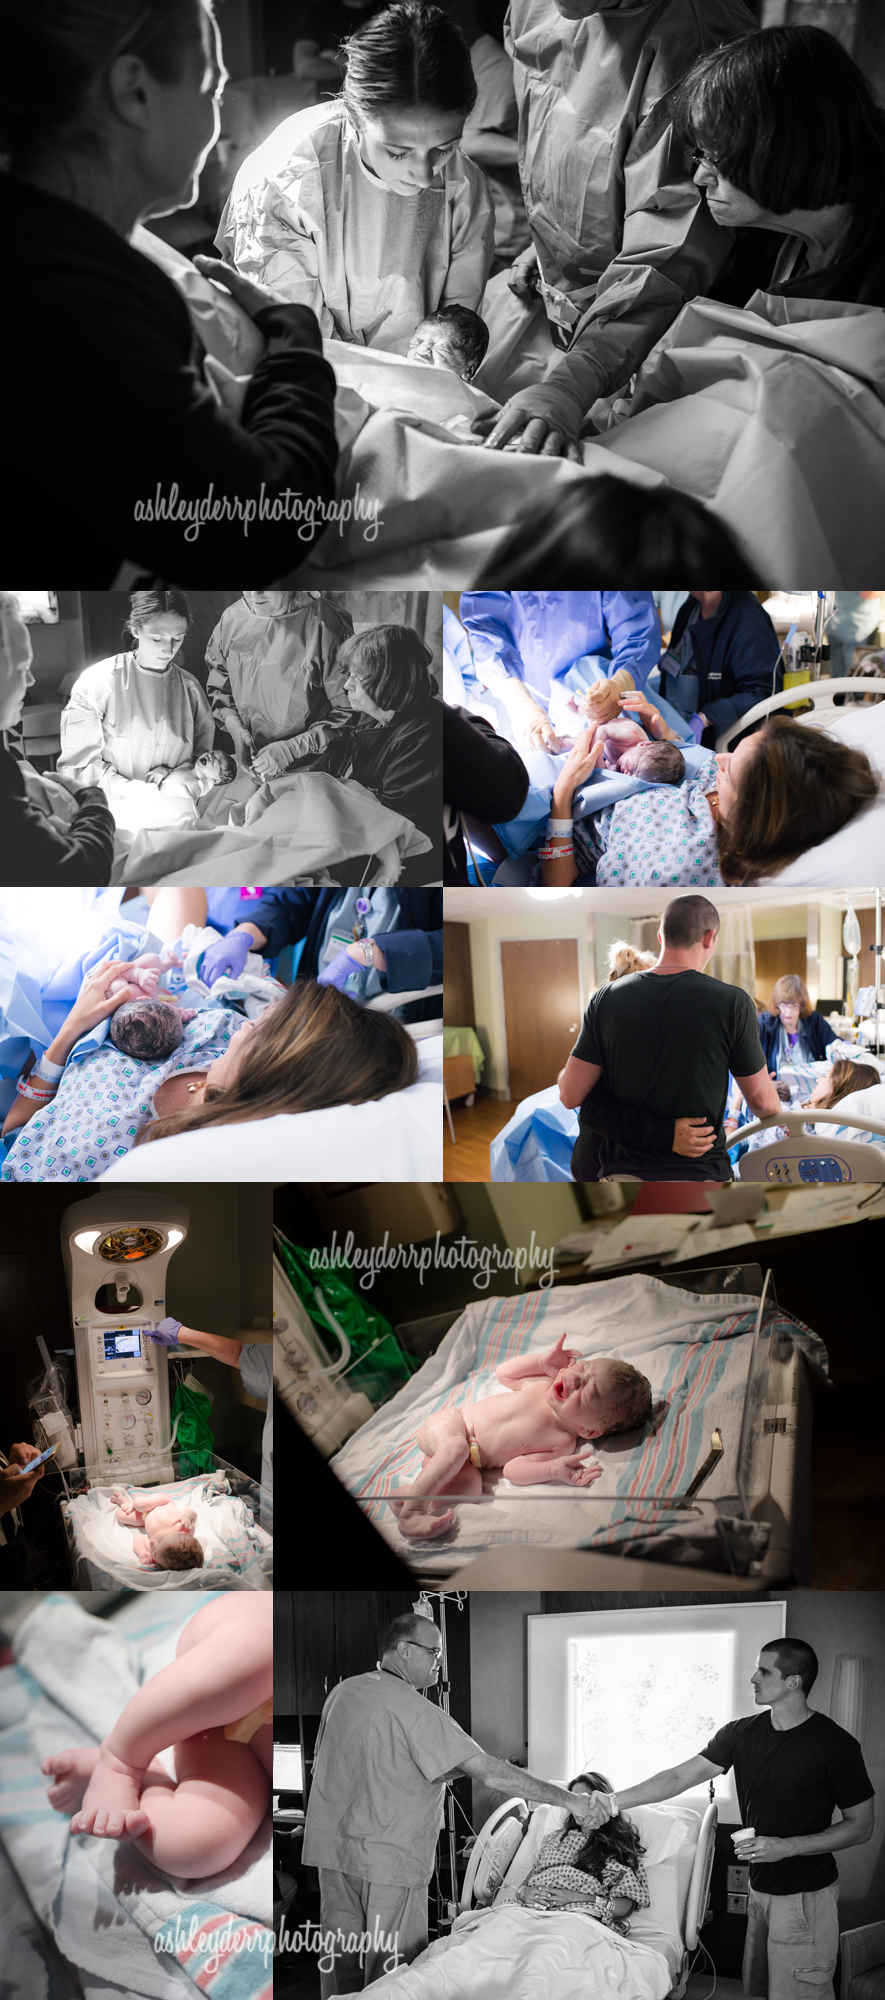 jefferson hospital pittsburgh birth delivery photographer